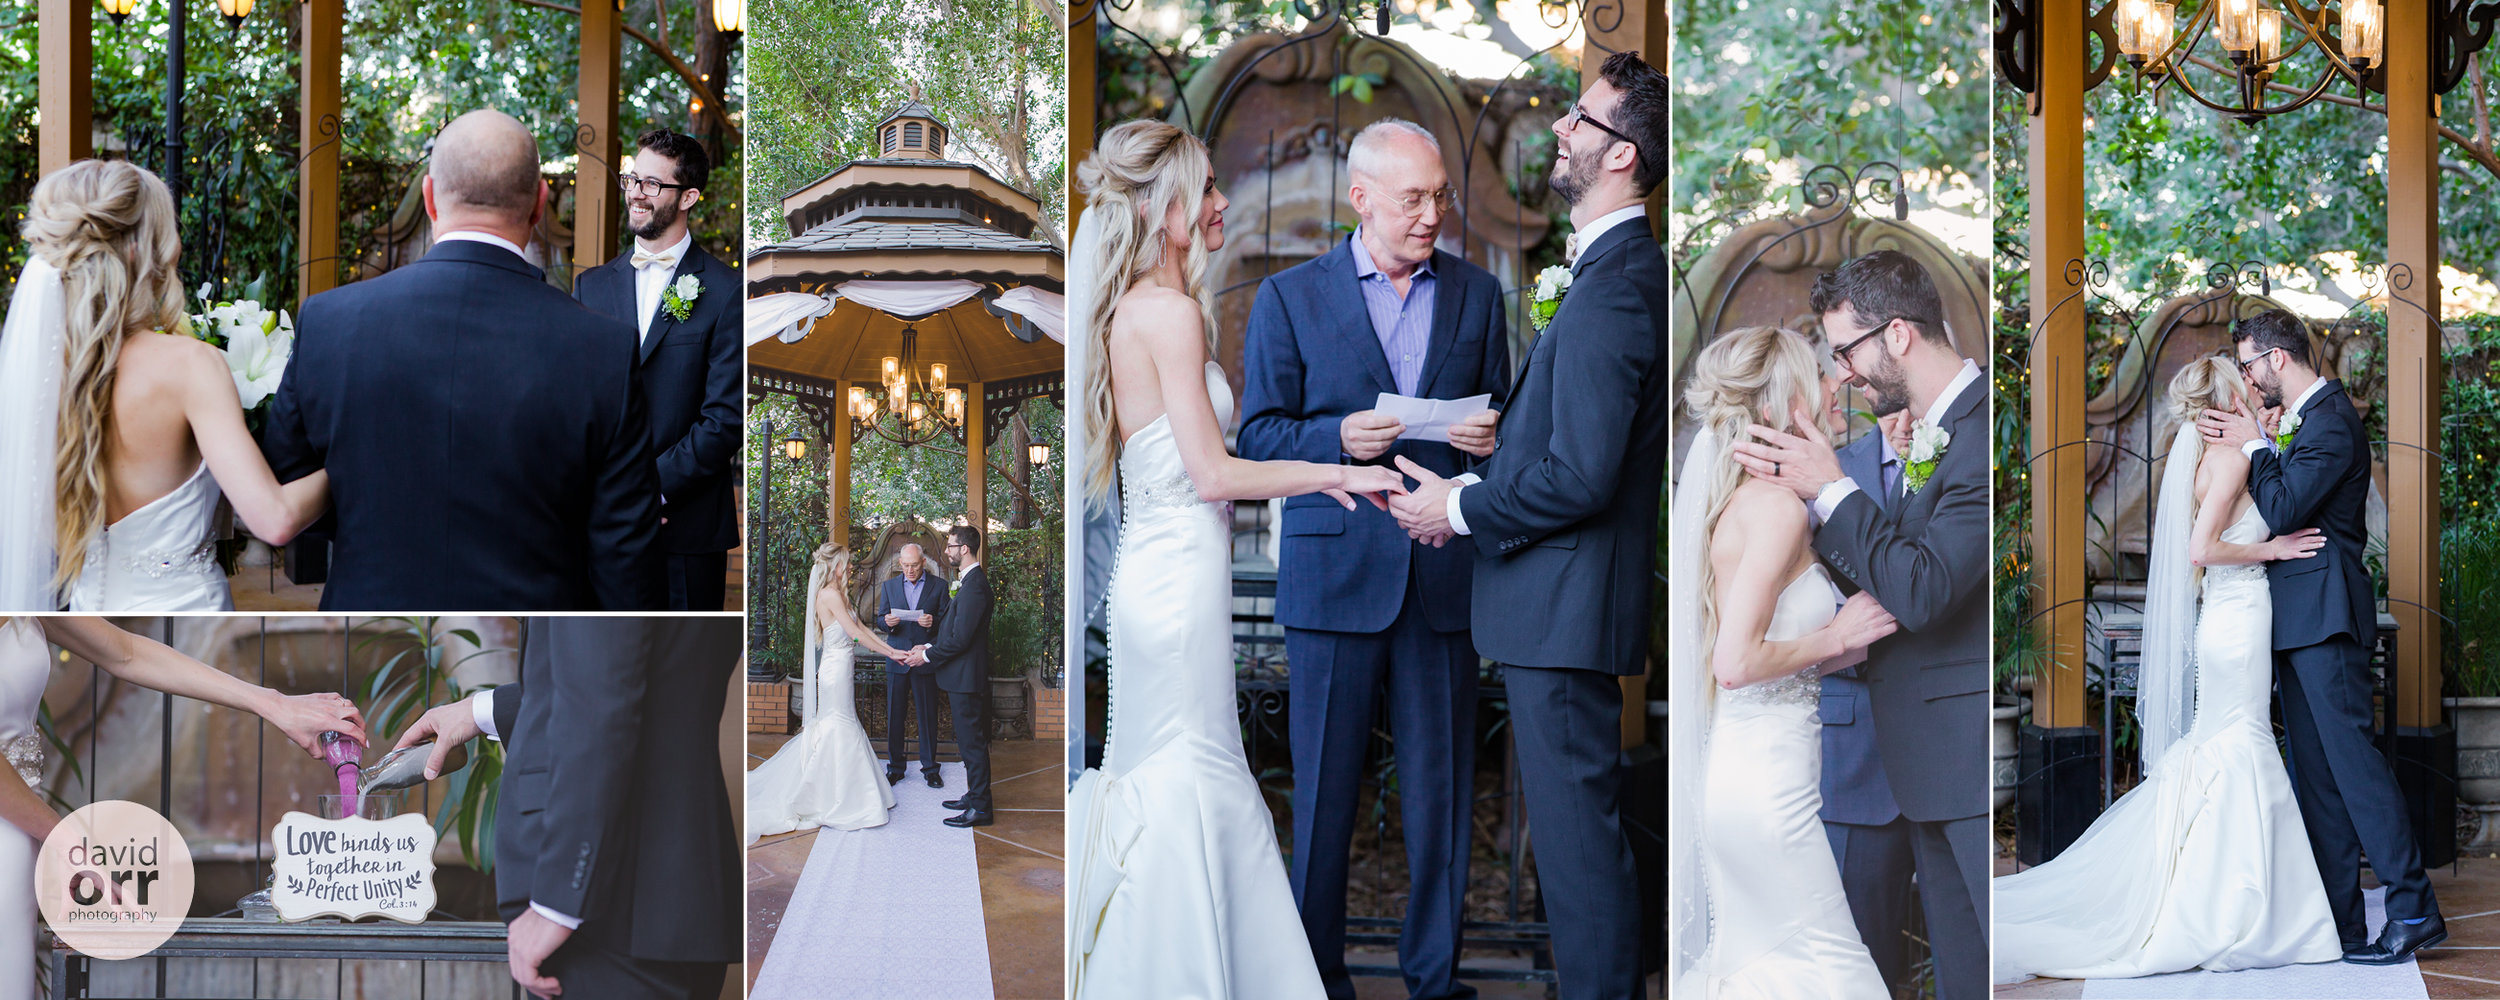 DavidOrrPhotography_Mesa-Regency-Garden-Wedding5.jpg